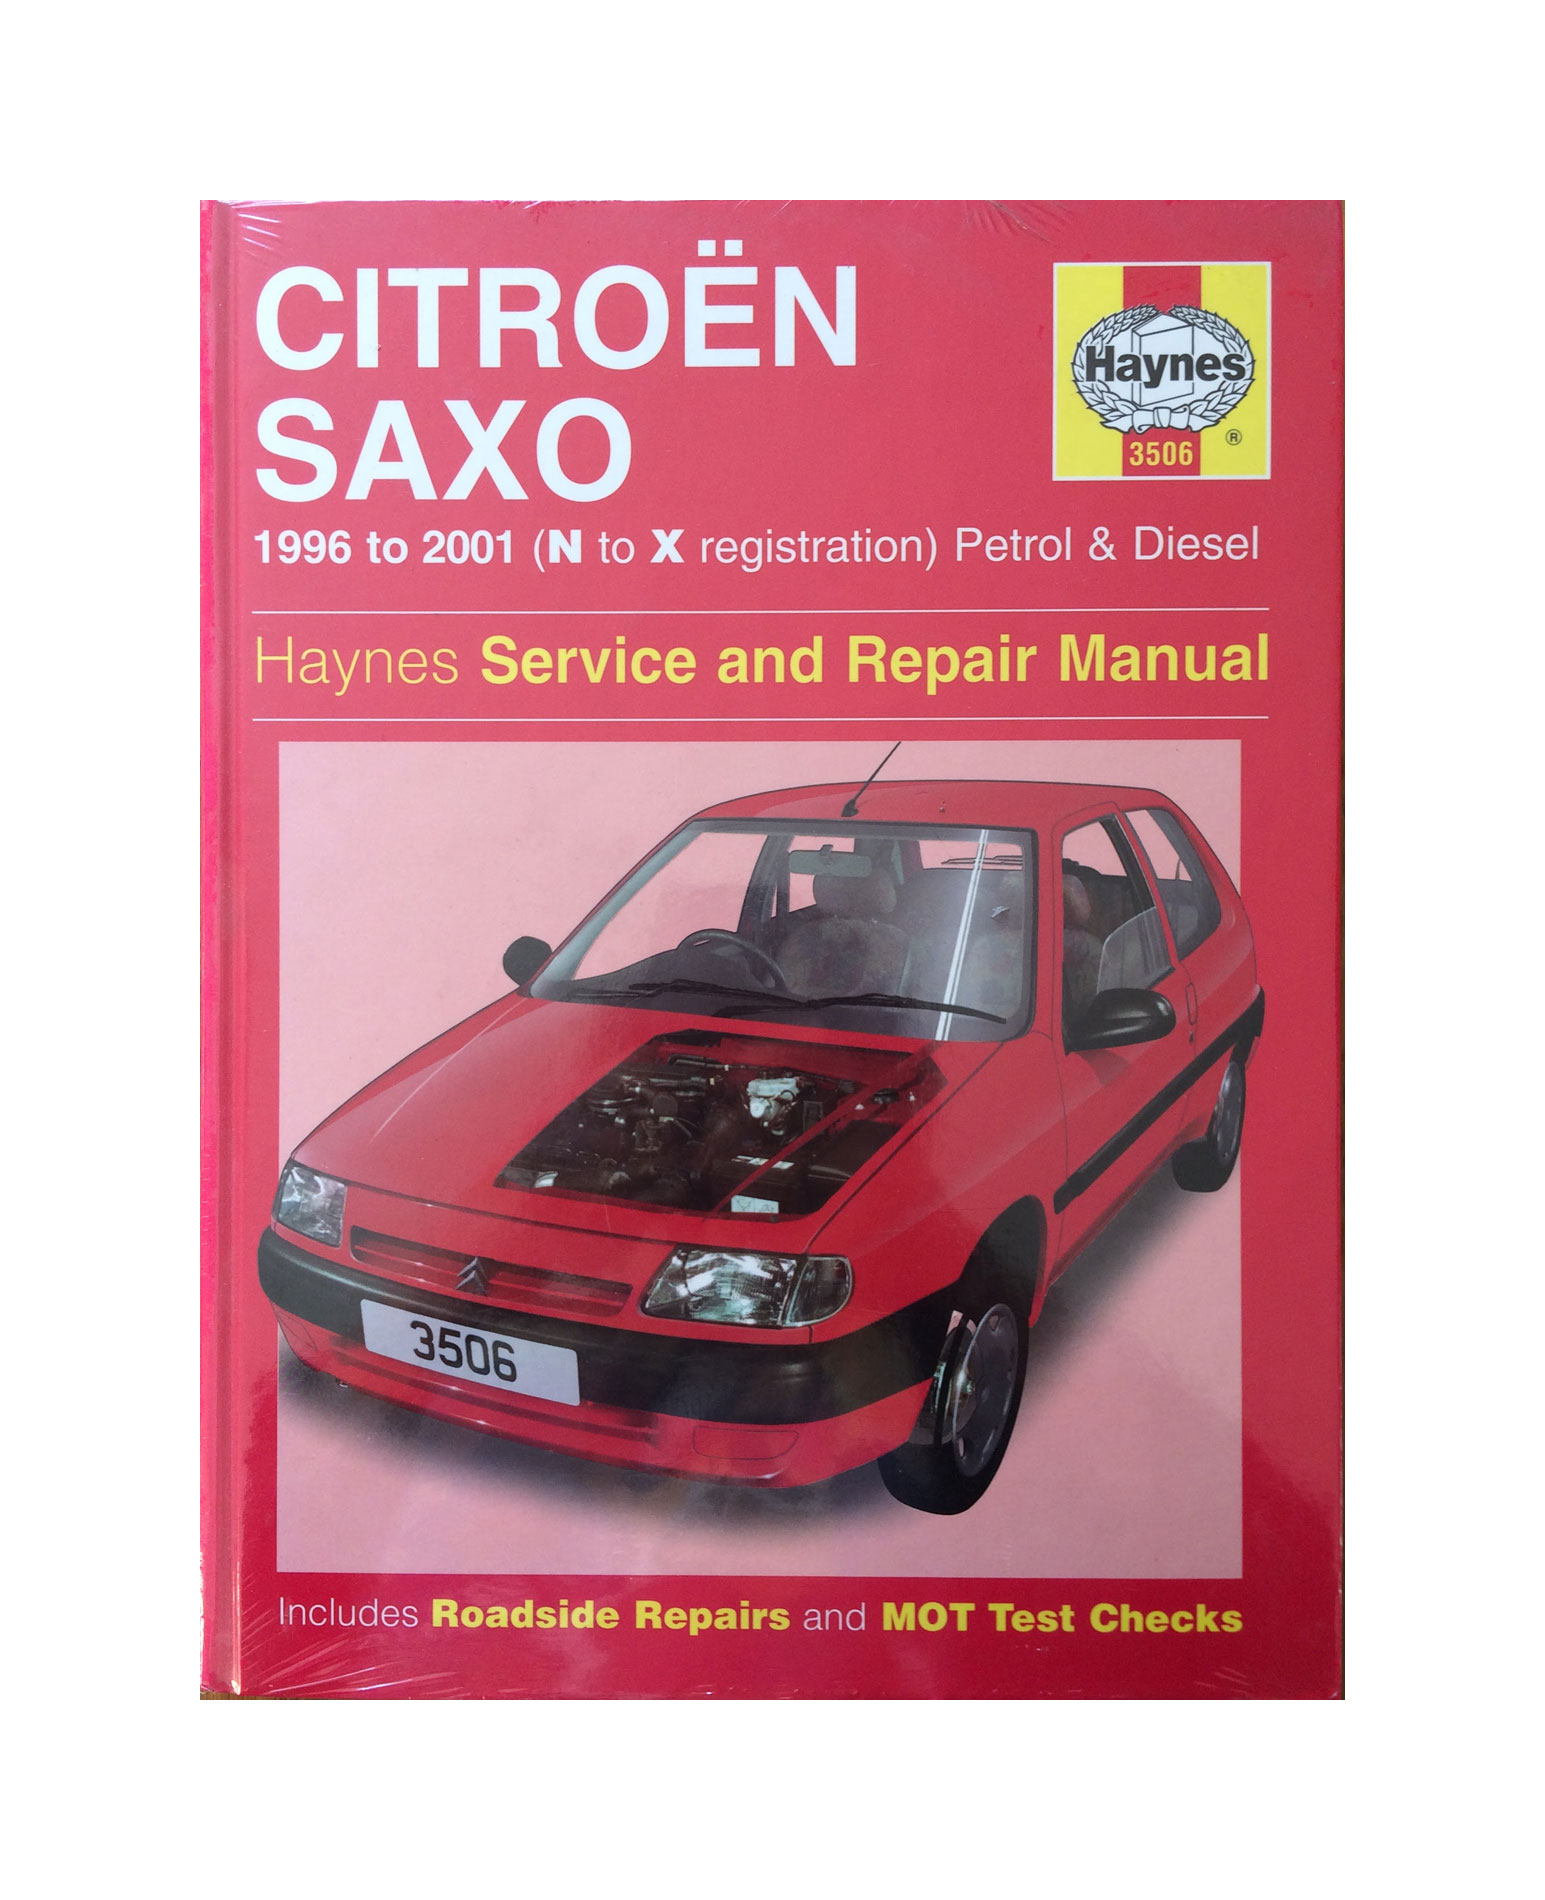 citroen saxo n x reg petrol diesel haynes service repair rh ebay co uk manual citroen saxo 1.5d manual citroen saxo pdf español